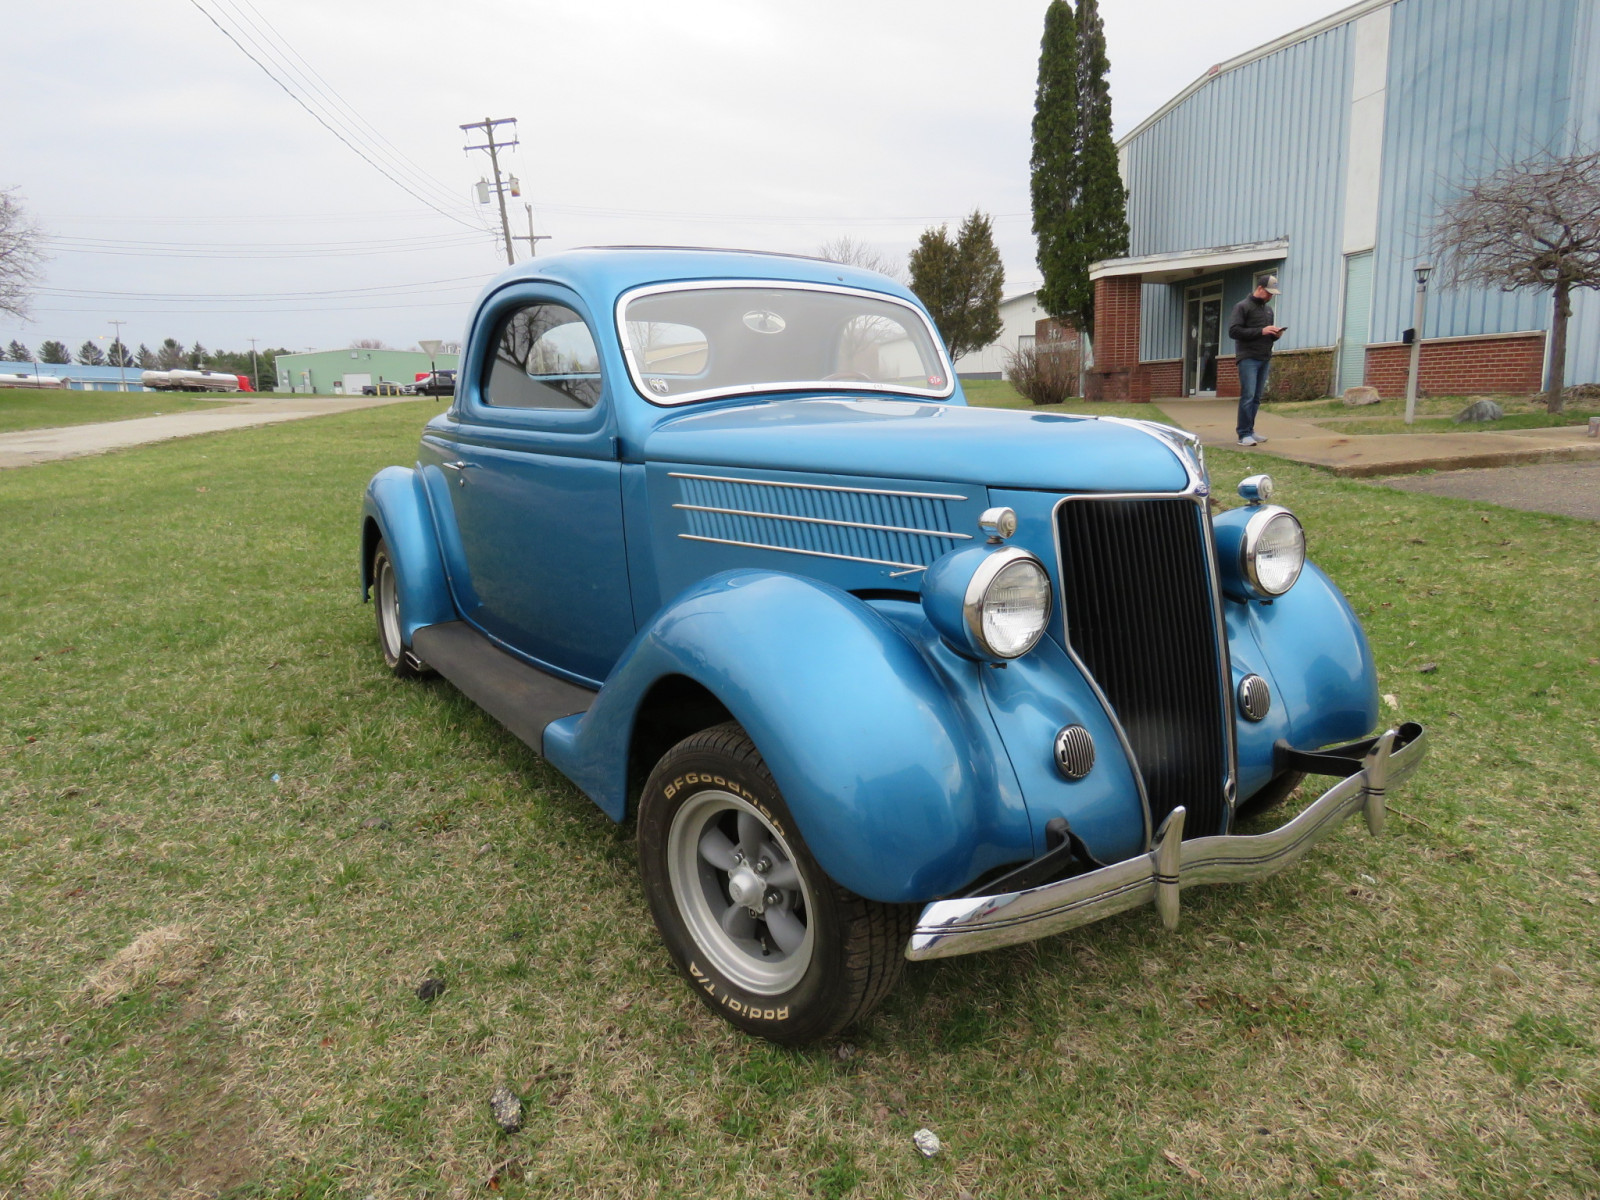 Rare 1936 Ford 3 Window Coupe - Image 1